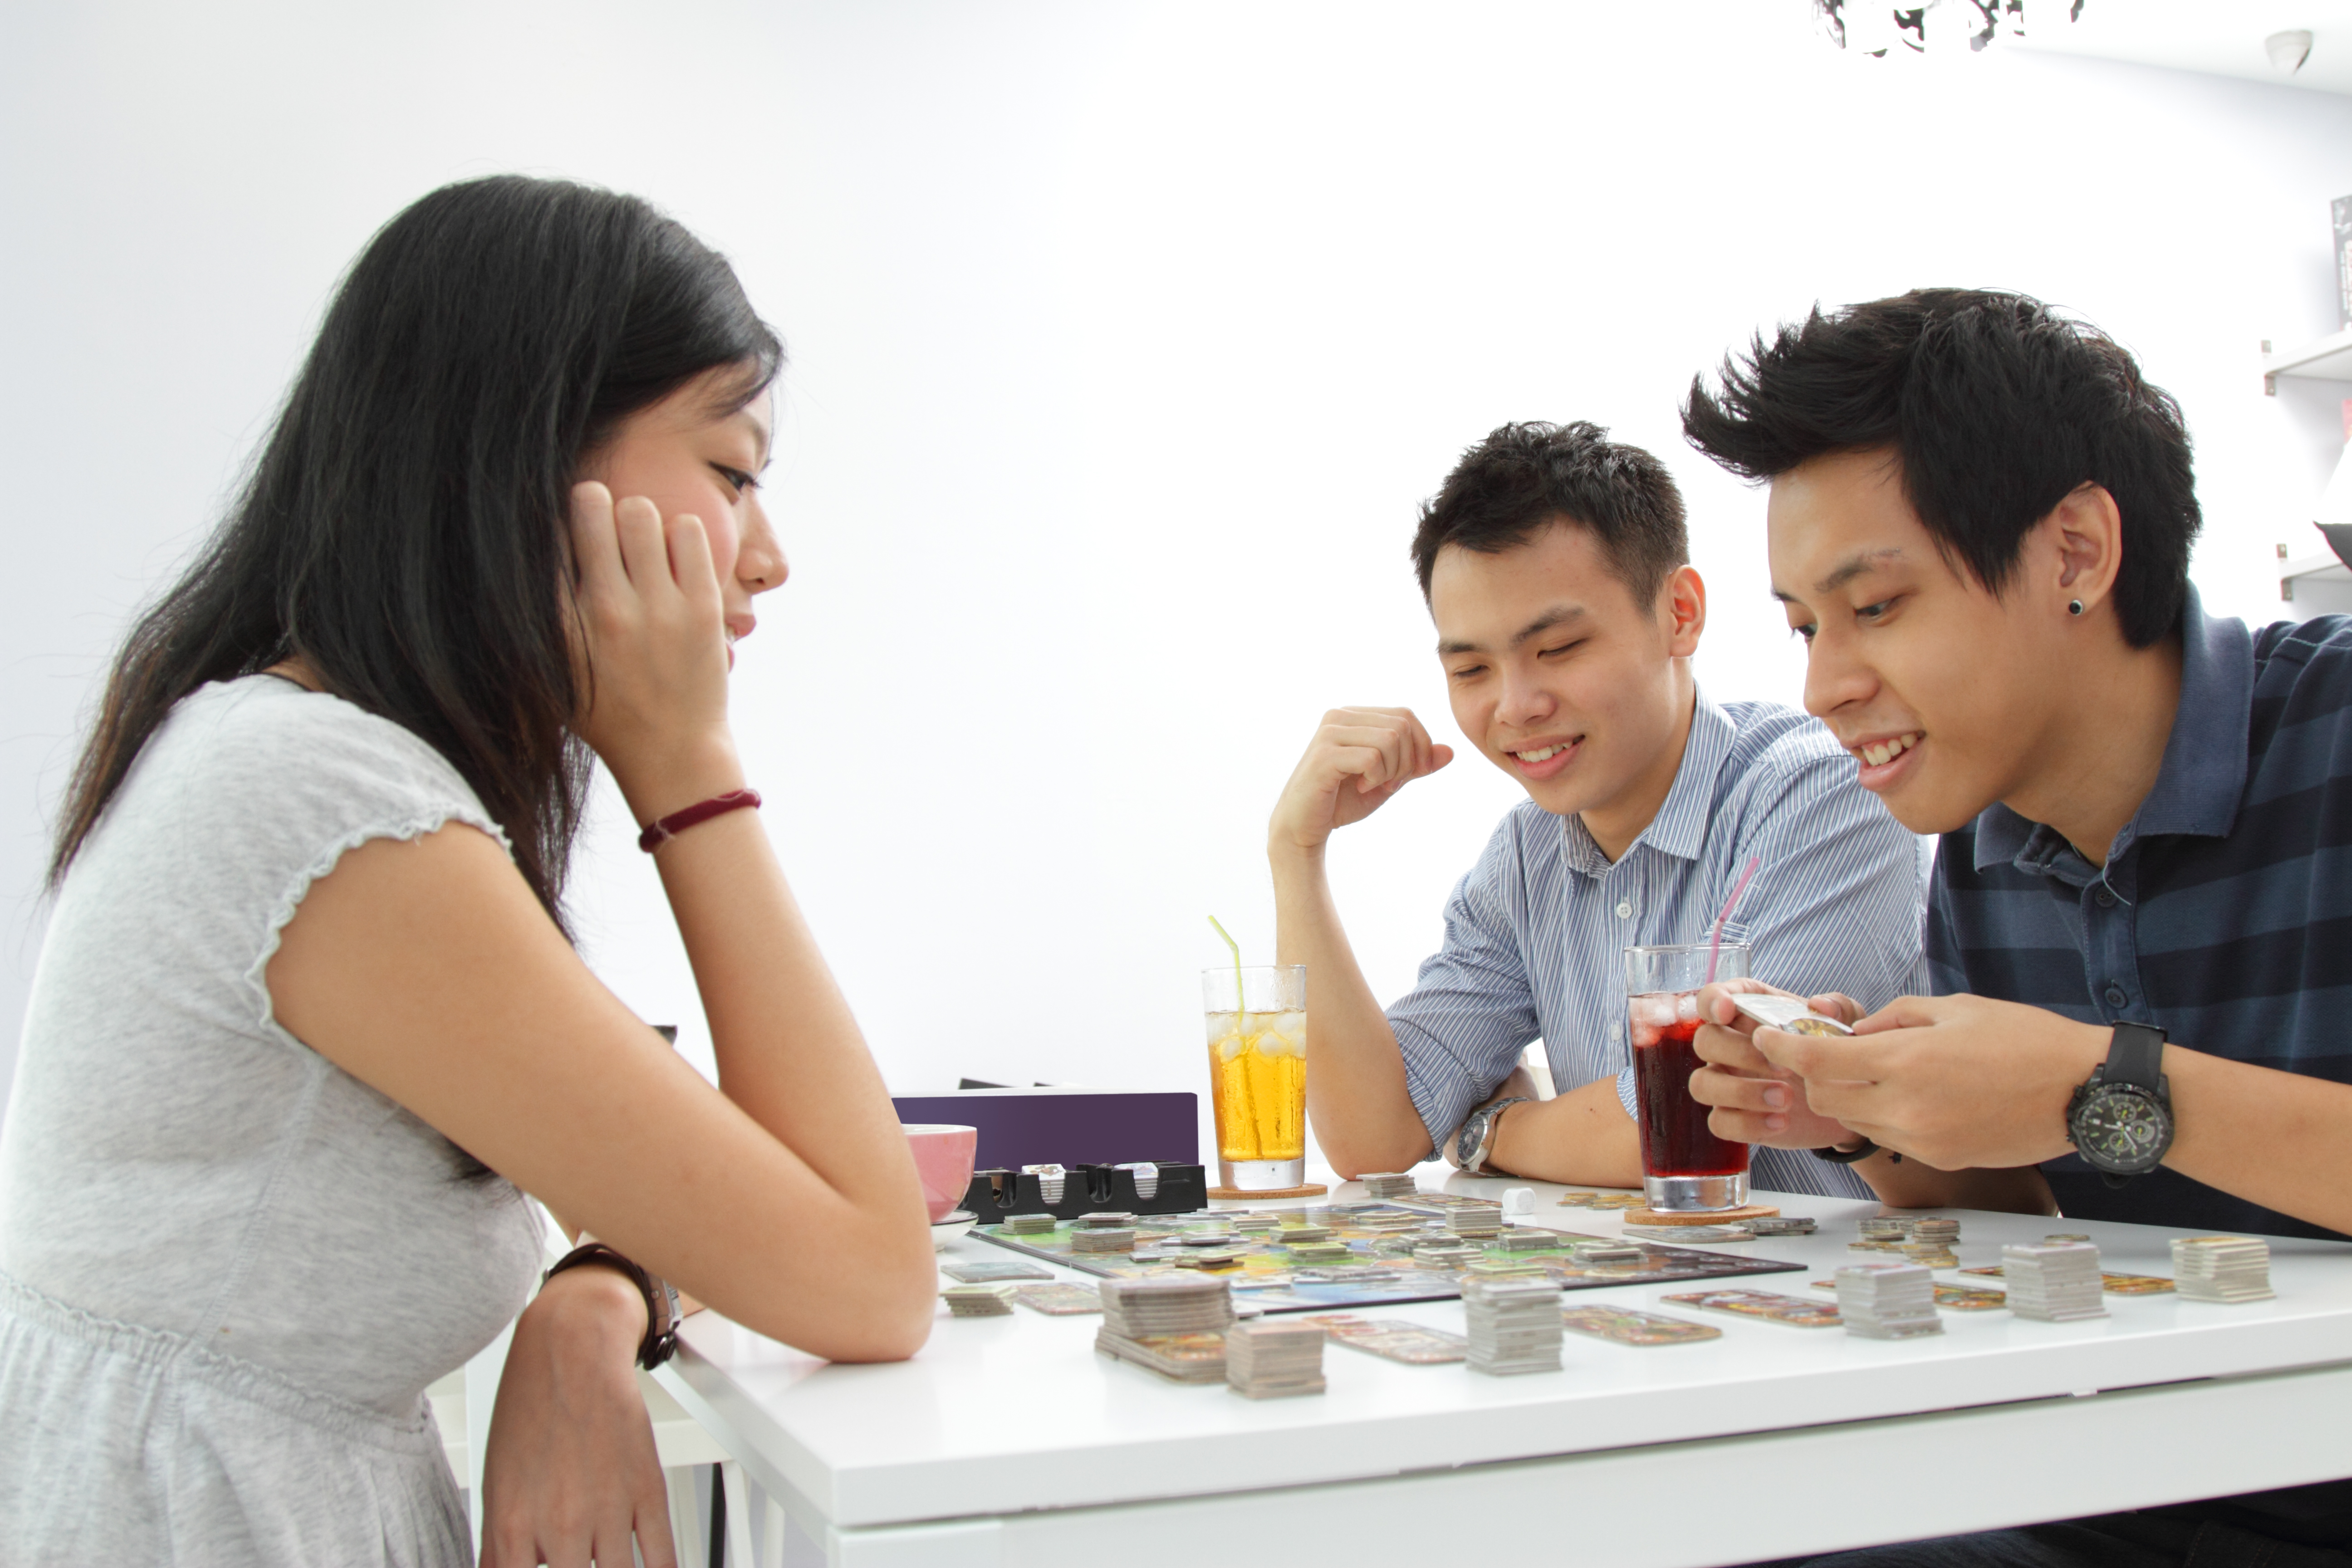 Three adults playing a board game